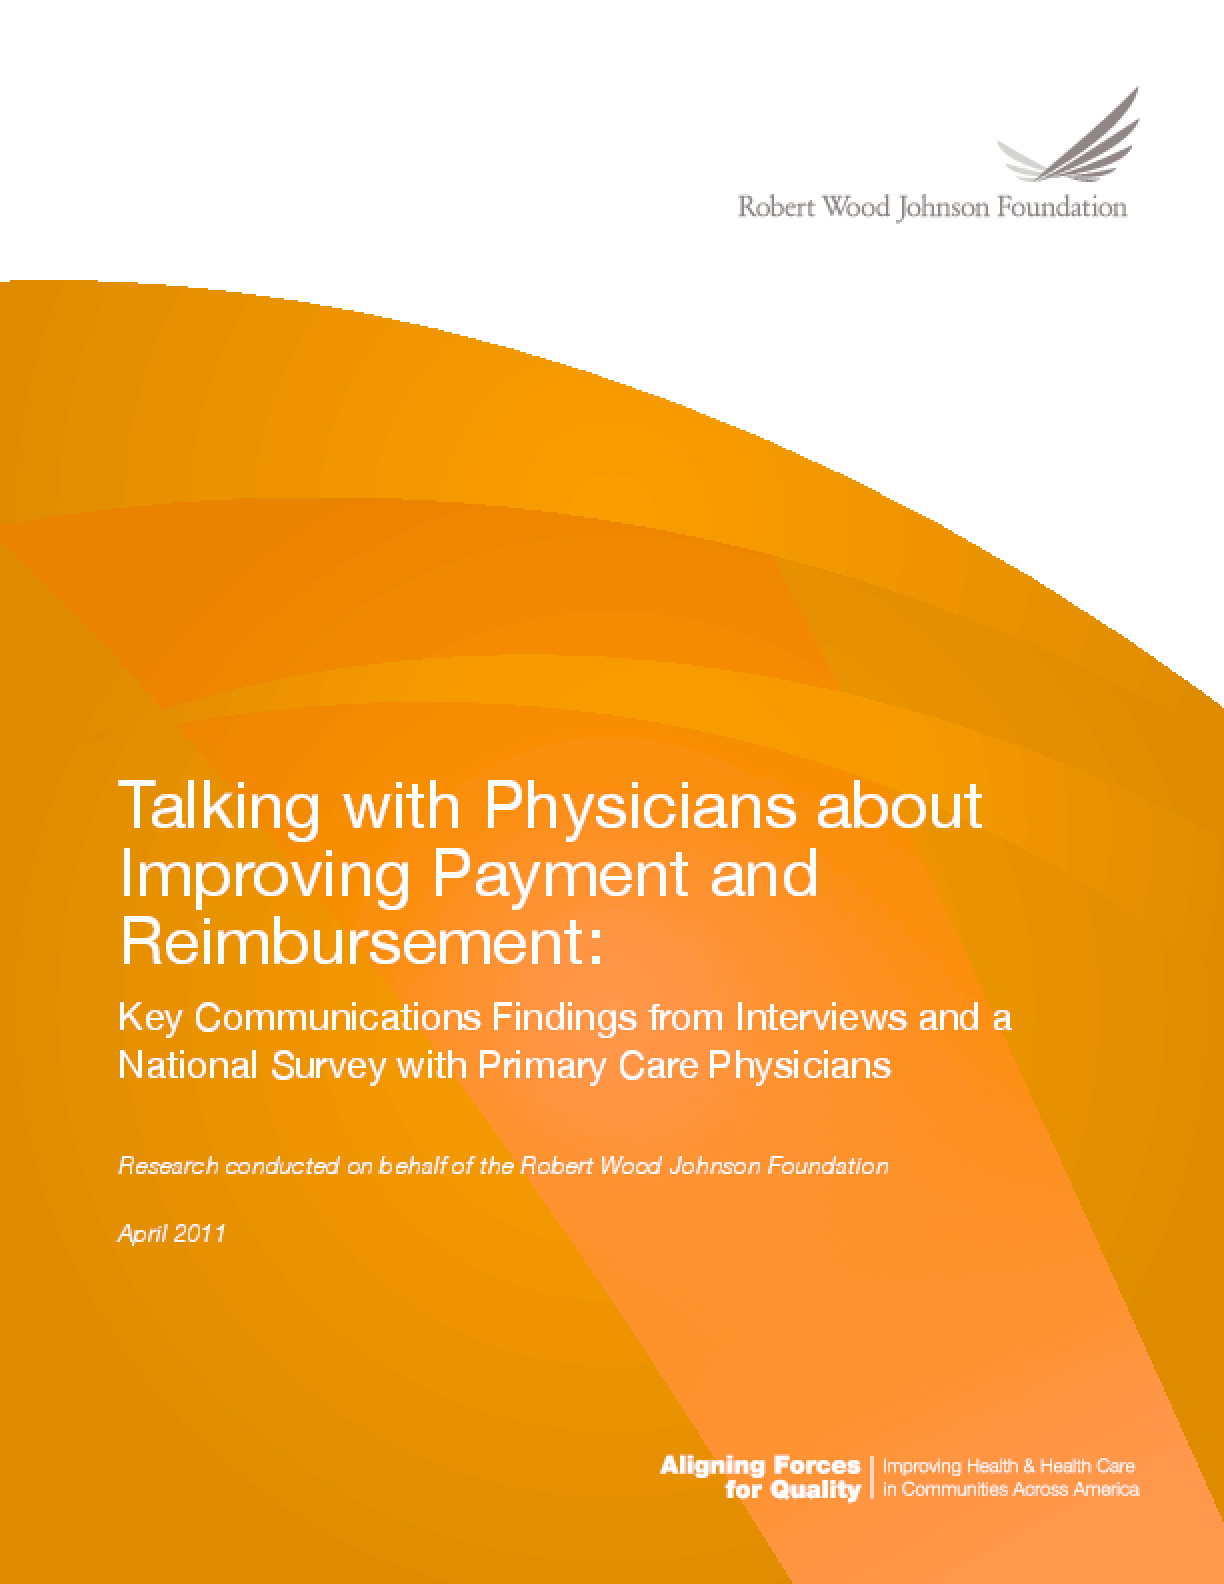 Talking With Physicians About Improving Payment and Reimbursement